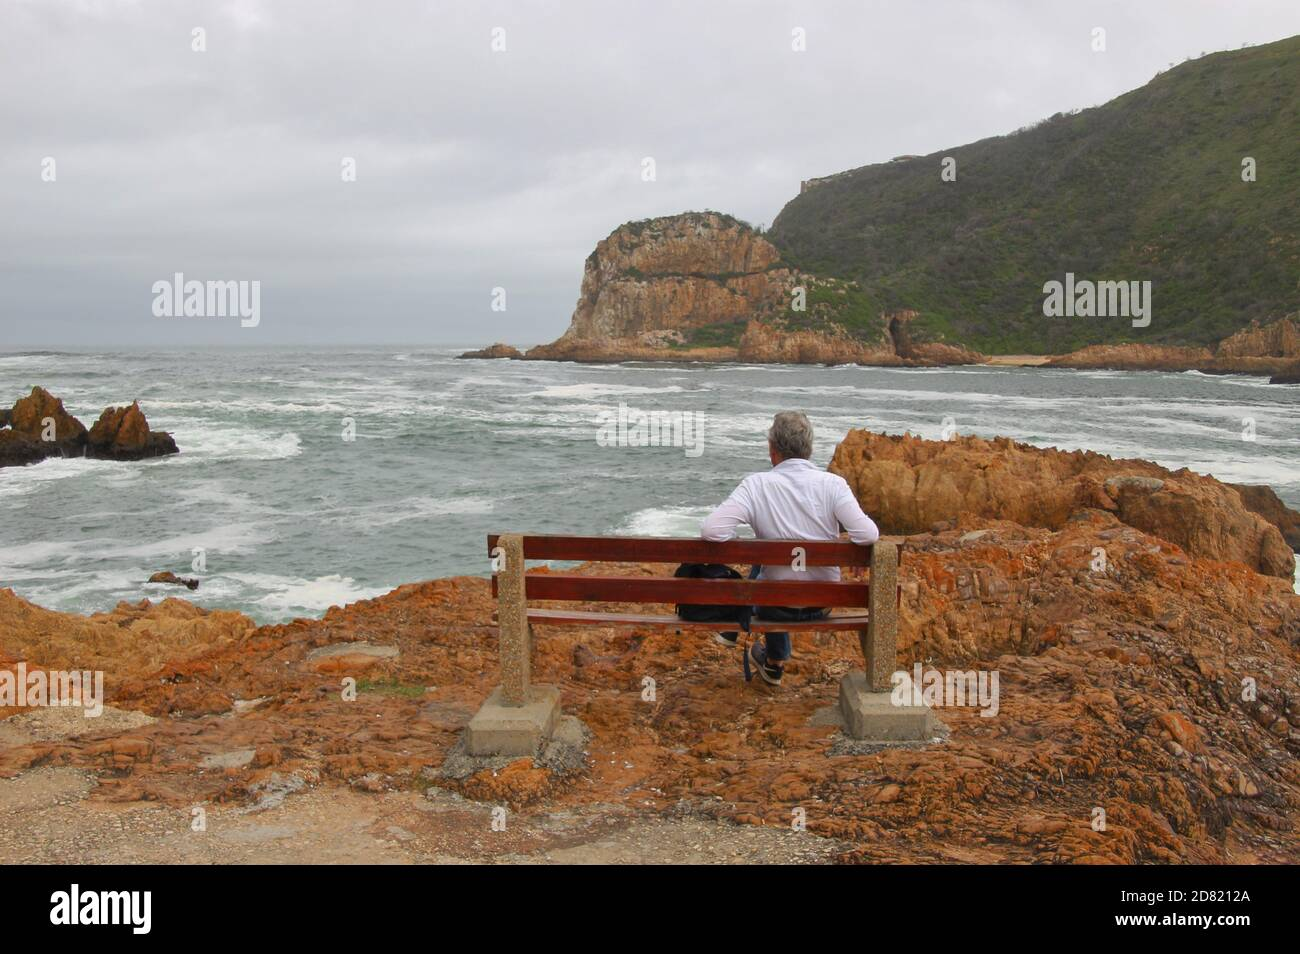 A man sits on a bench, looking at the sandstone cliffs of Knysna Heads. A famous landmark along the renowned Garden Route, South Africa, Africa. Stock Photo